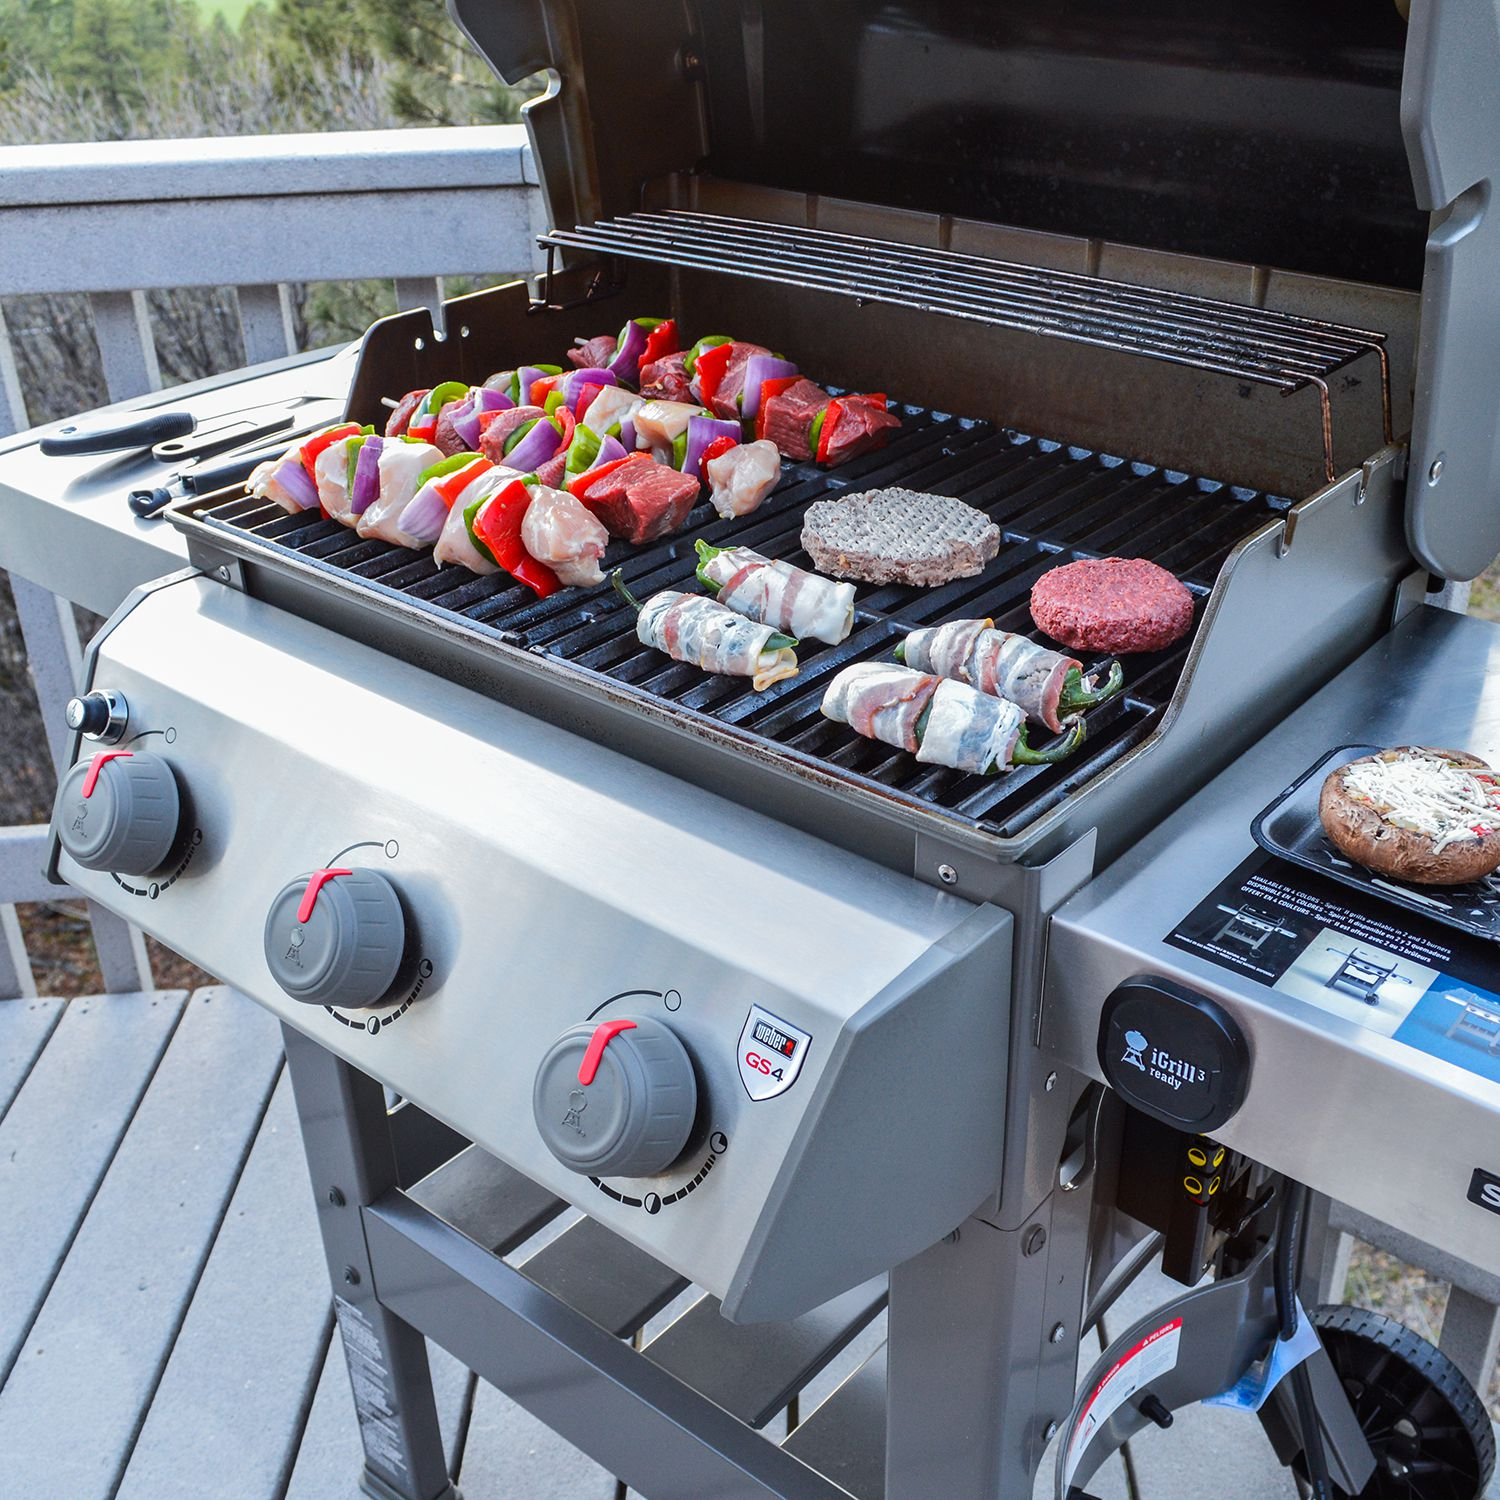 bca7c84ca3d Weber Spirit II E-310 Gas Grill Review: For Novices, Pitmasters Alike